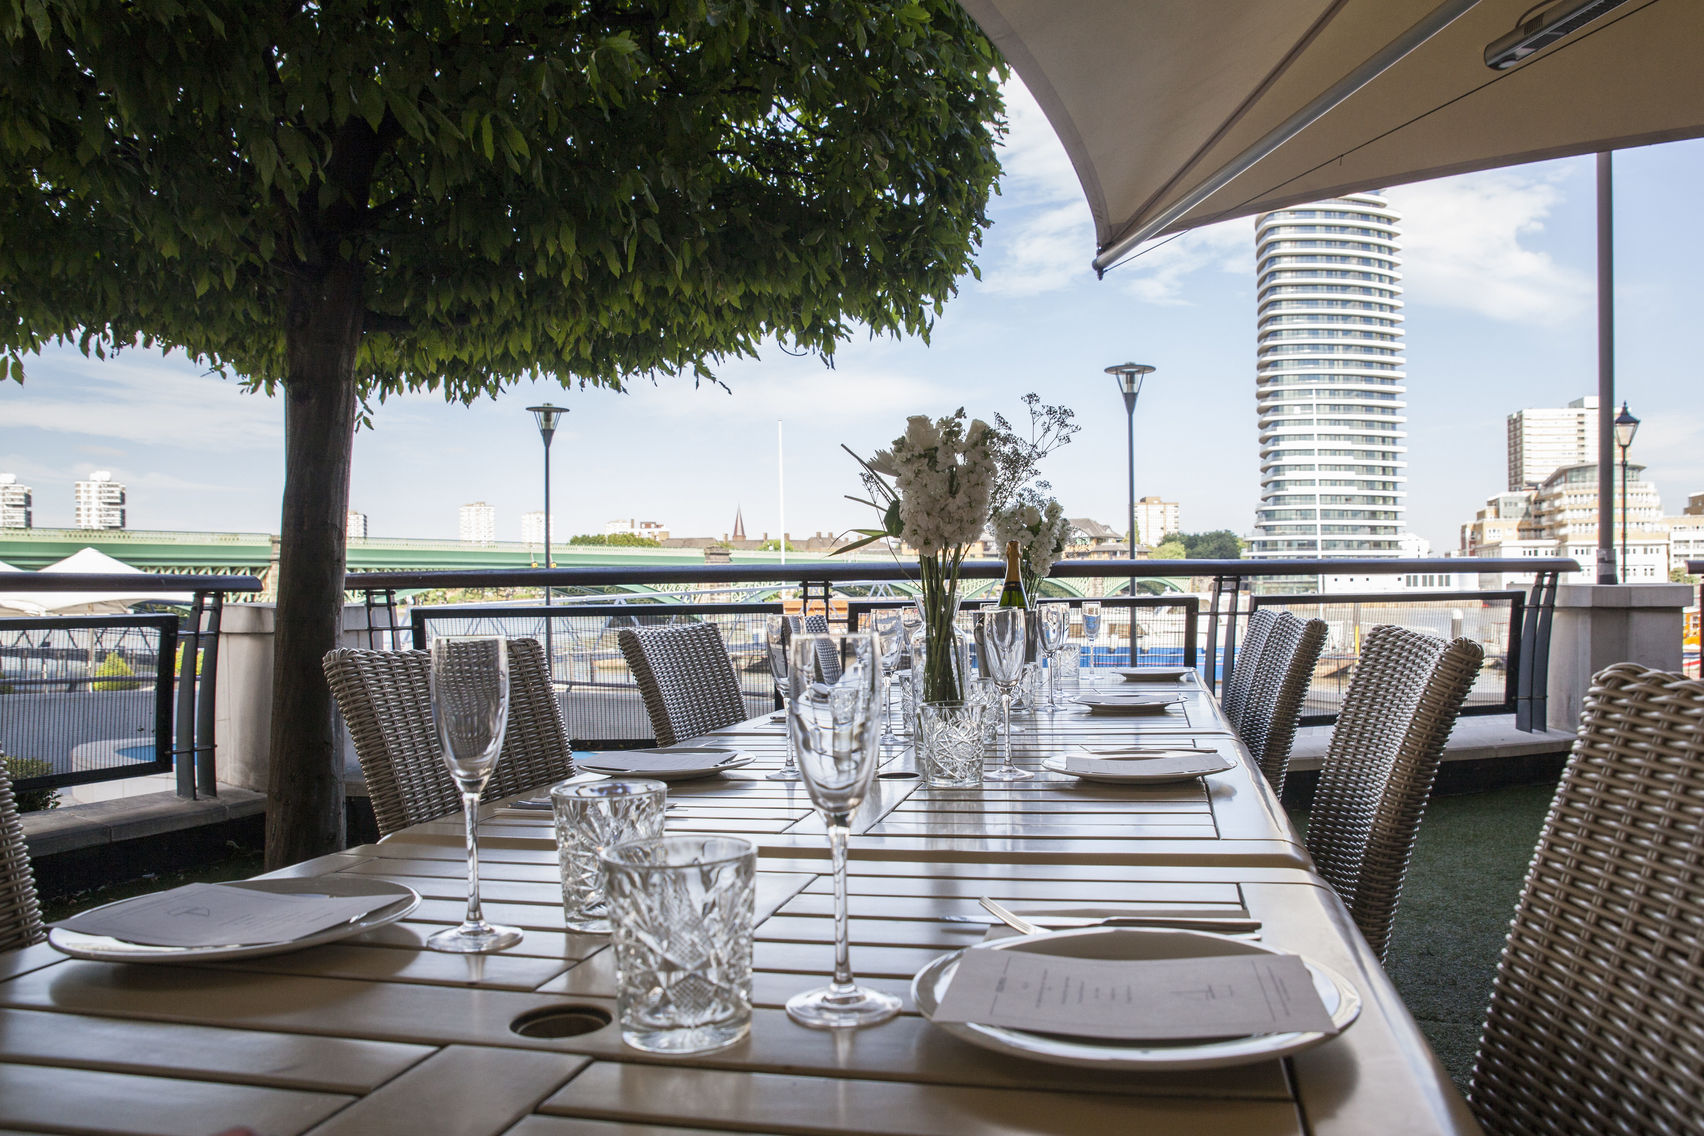 Table on the balcony of The Waterside with views across the river Thames